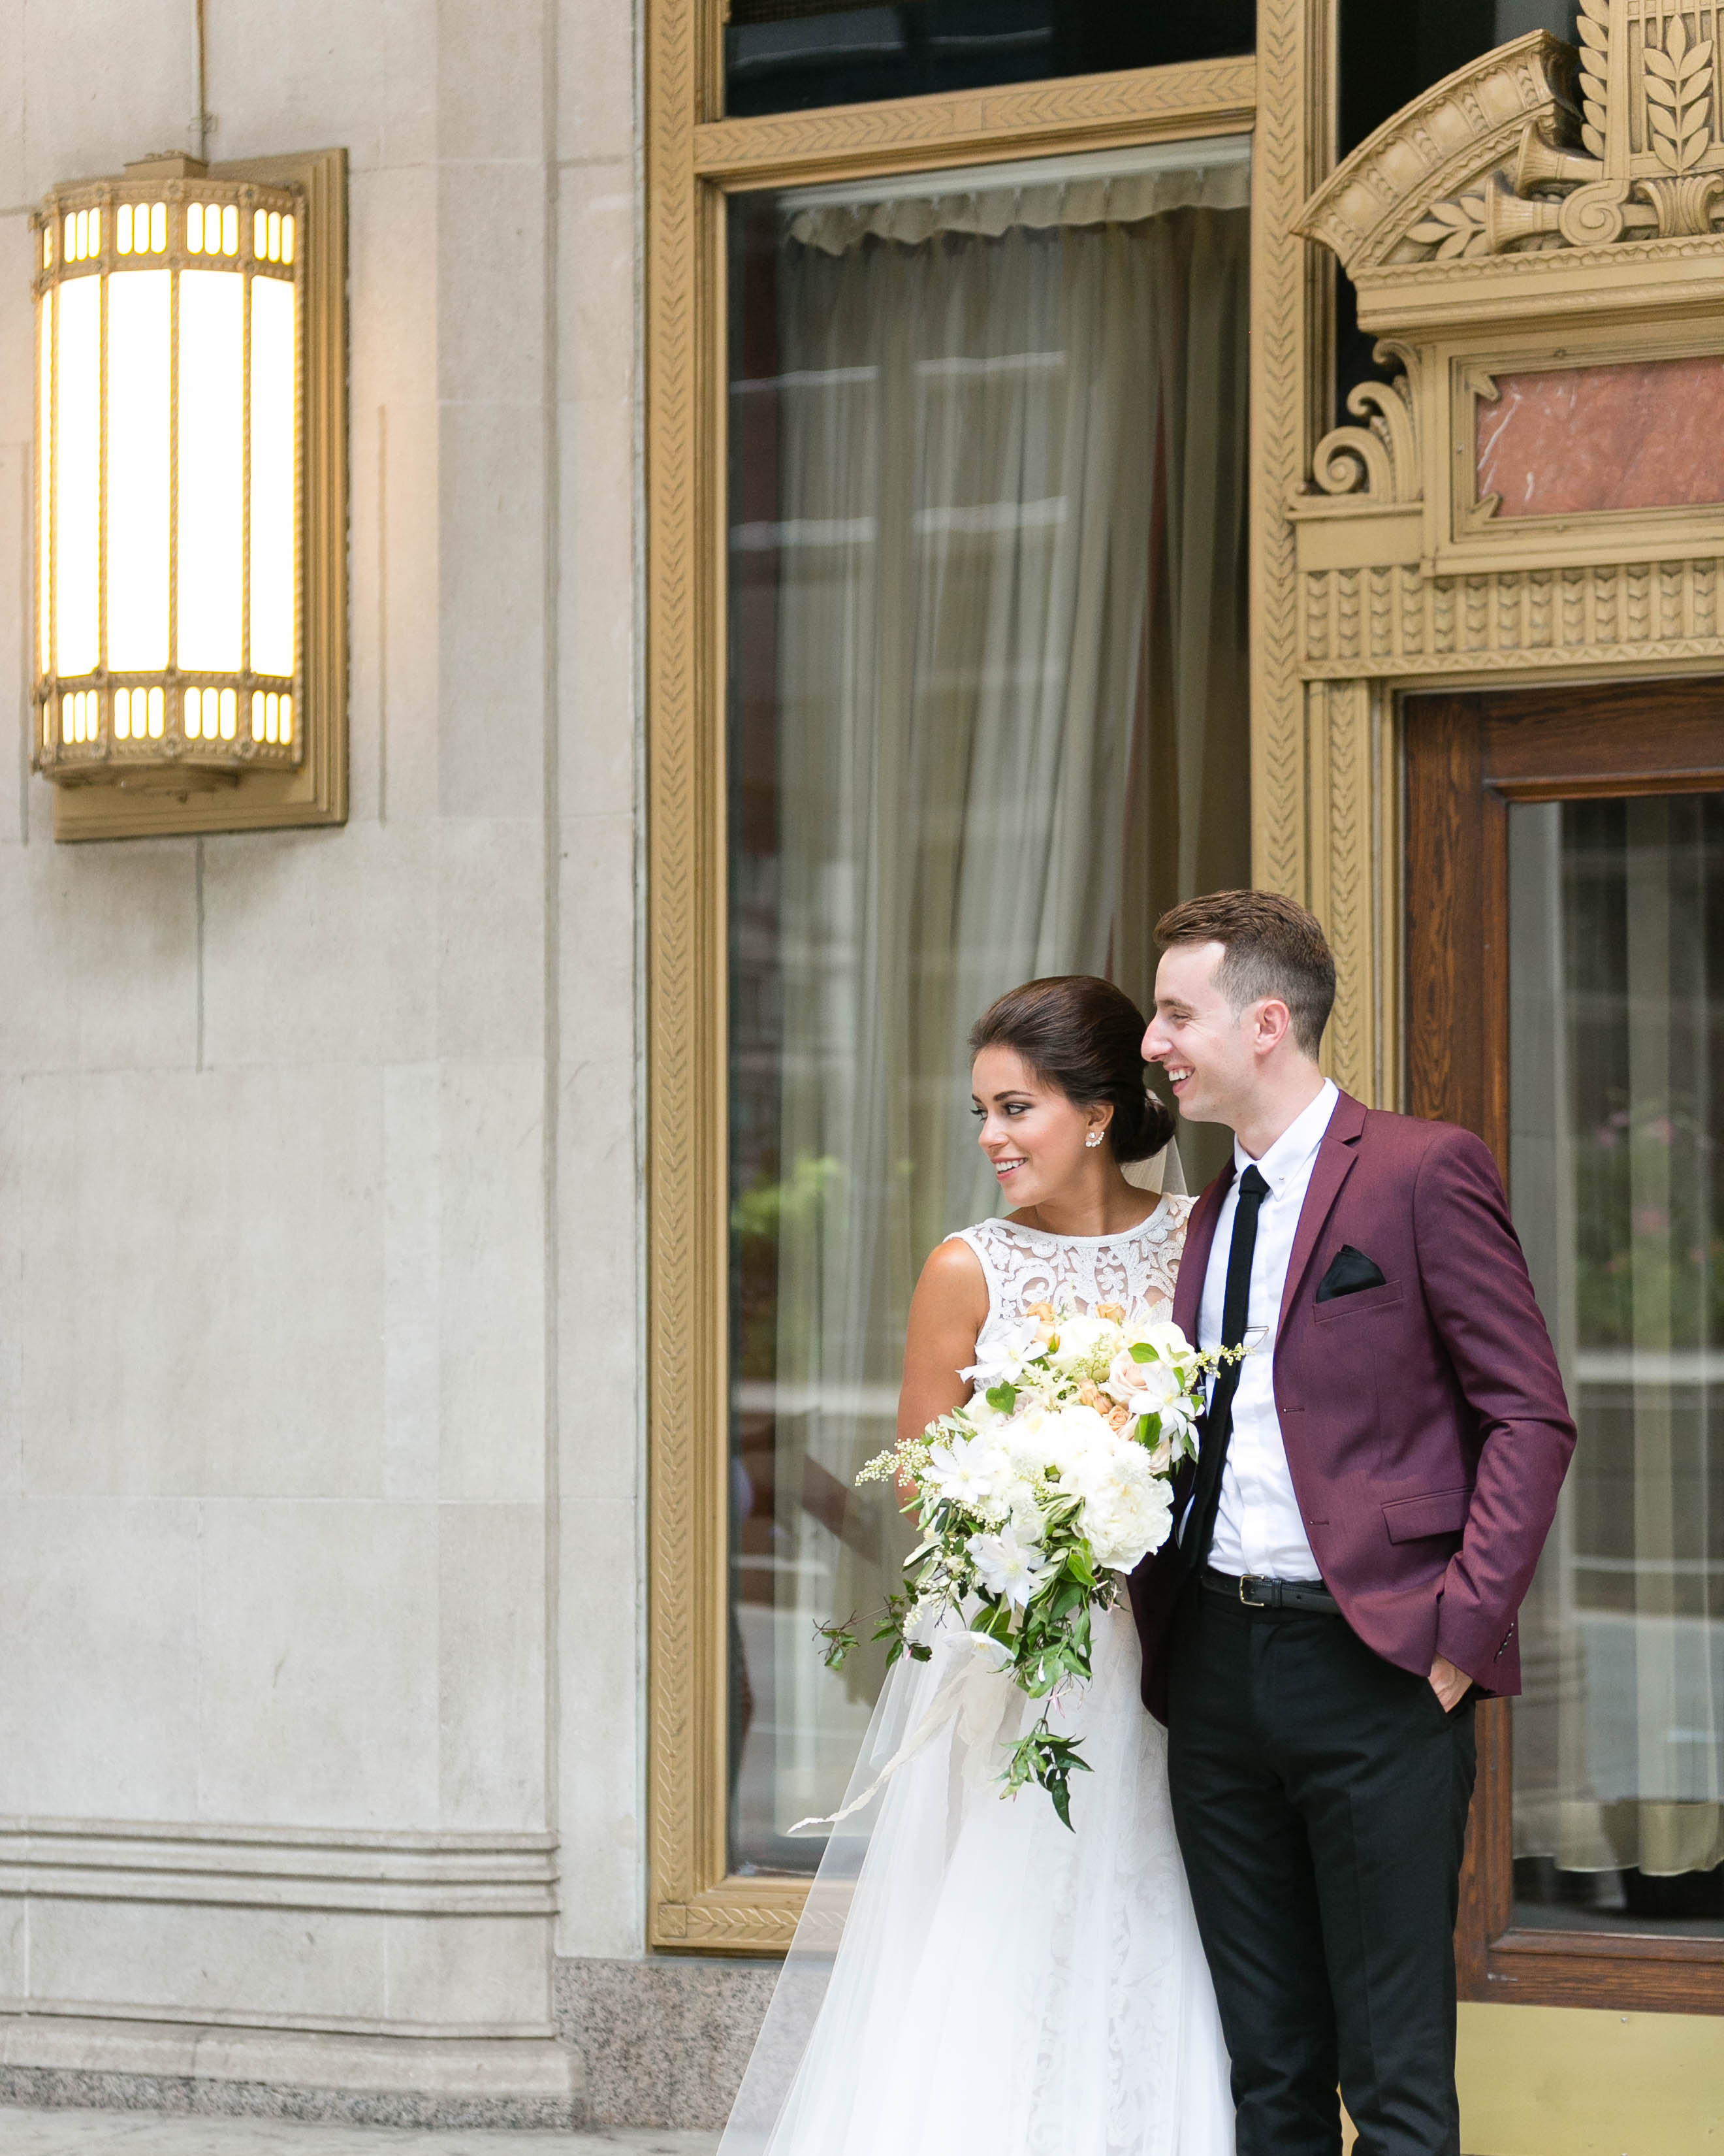 bianca-bryen-wedding-couple-117-s112509-0216.jpg